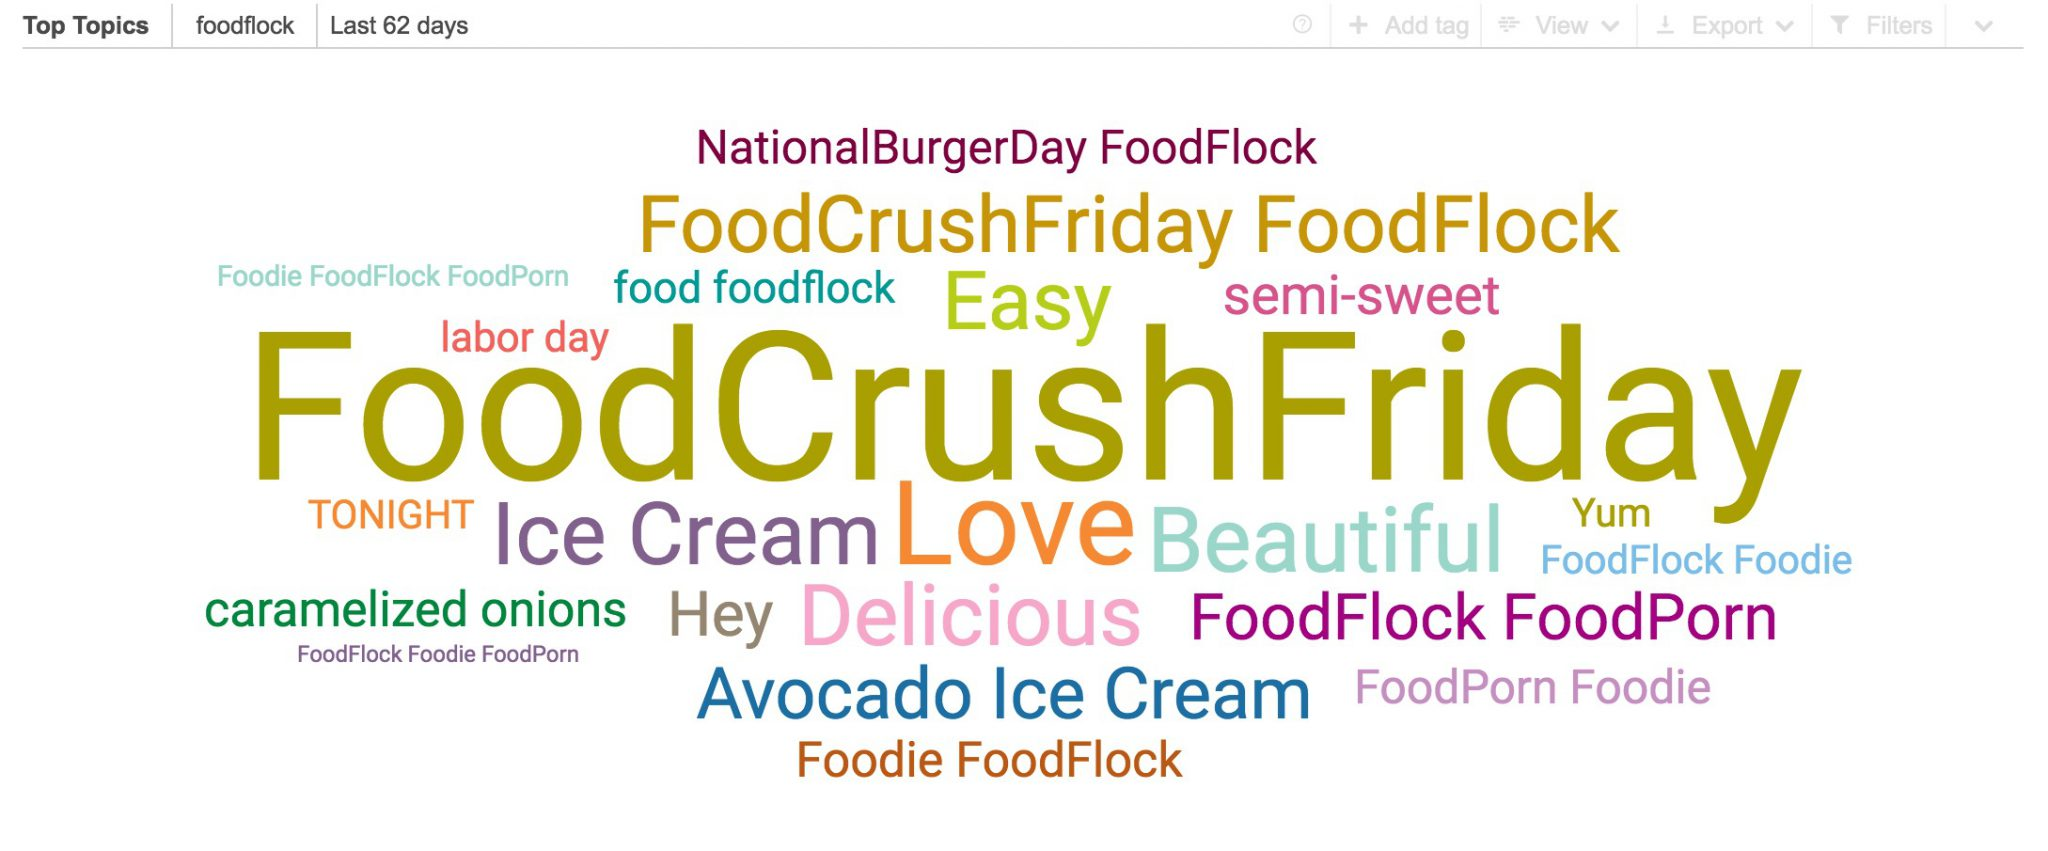 Among the topics of twitter particularly highlights the hash #FoodCrushFriday.